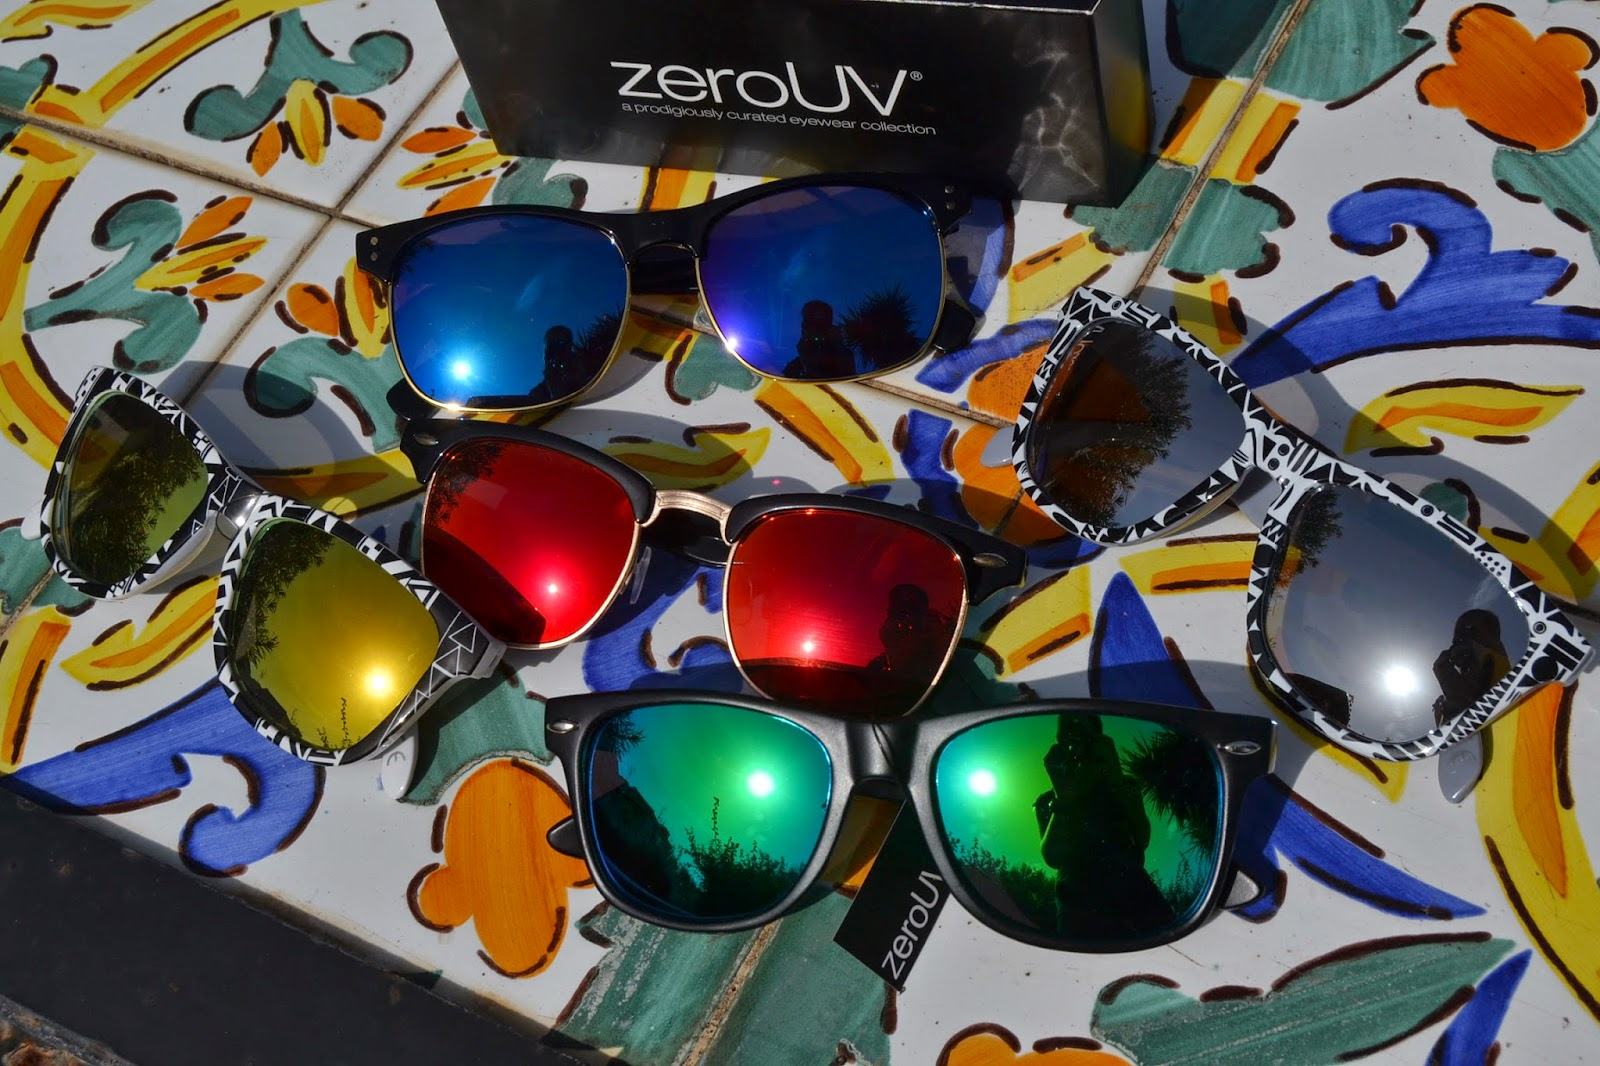 http://www.syriouslyinfashion.com/2014/10/zerouv-fall-sunglasses-rush.html